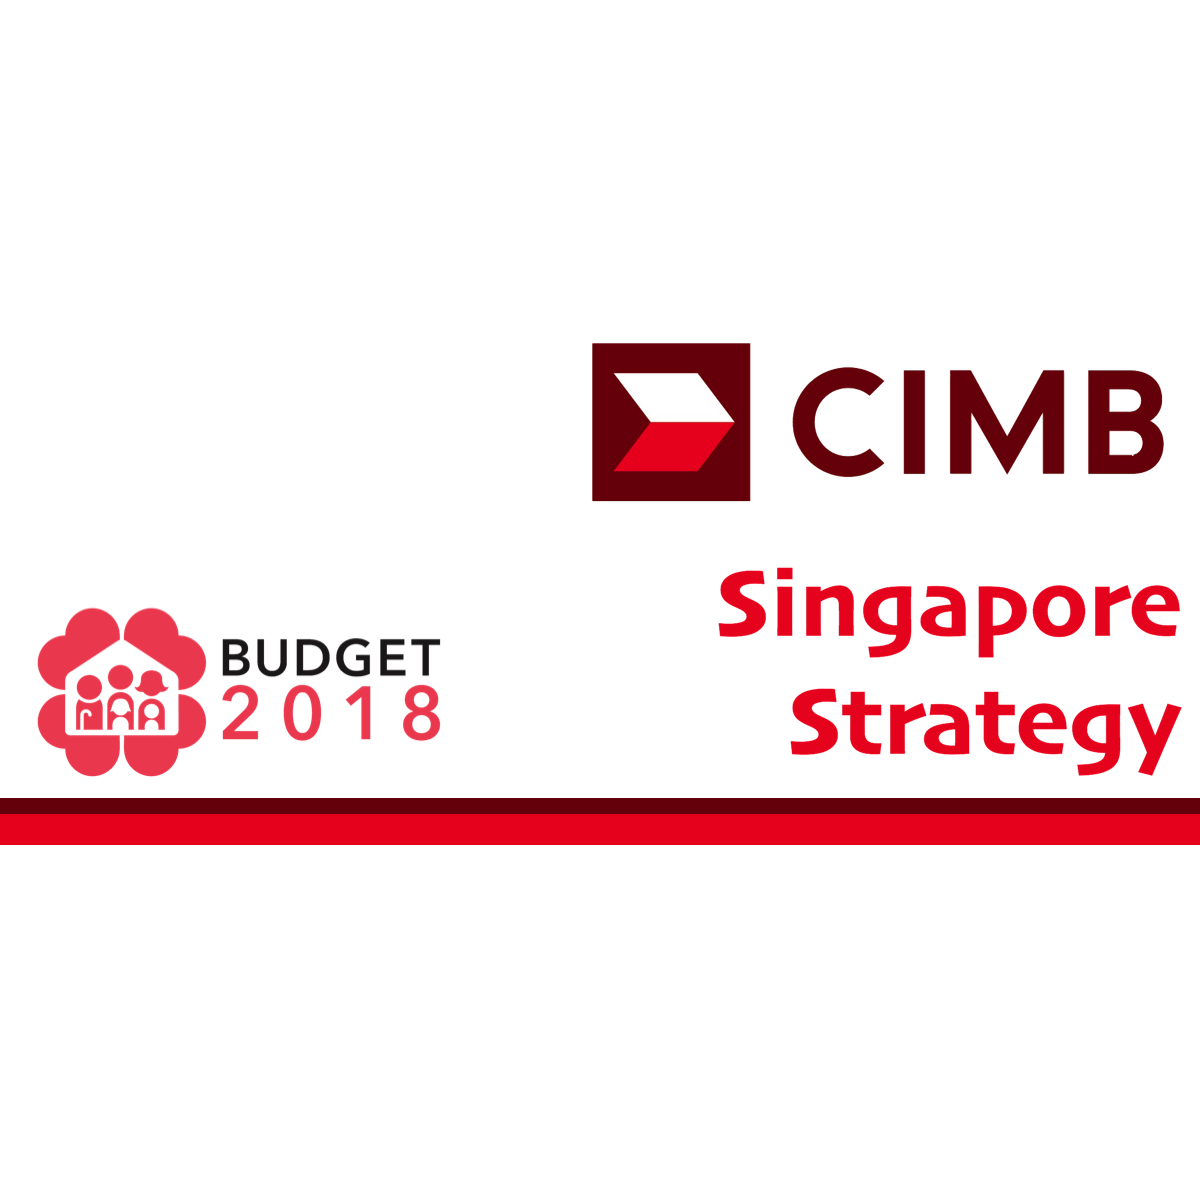 Singapore Strategy - CIMB Research 2018-02-20: Singapore Budget 2018